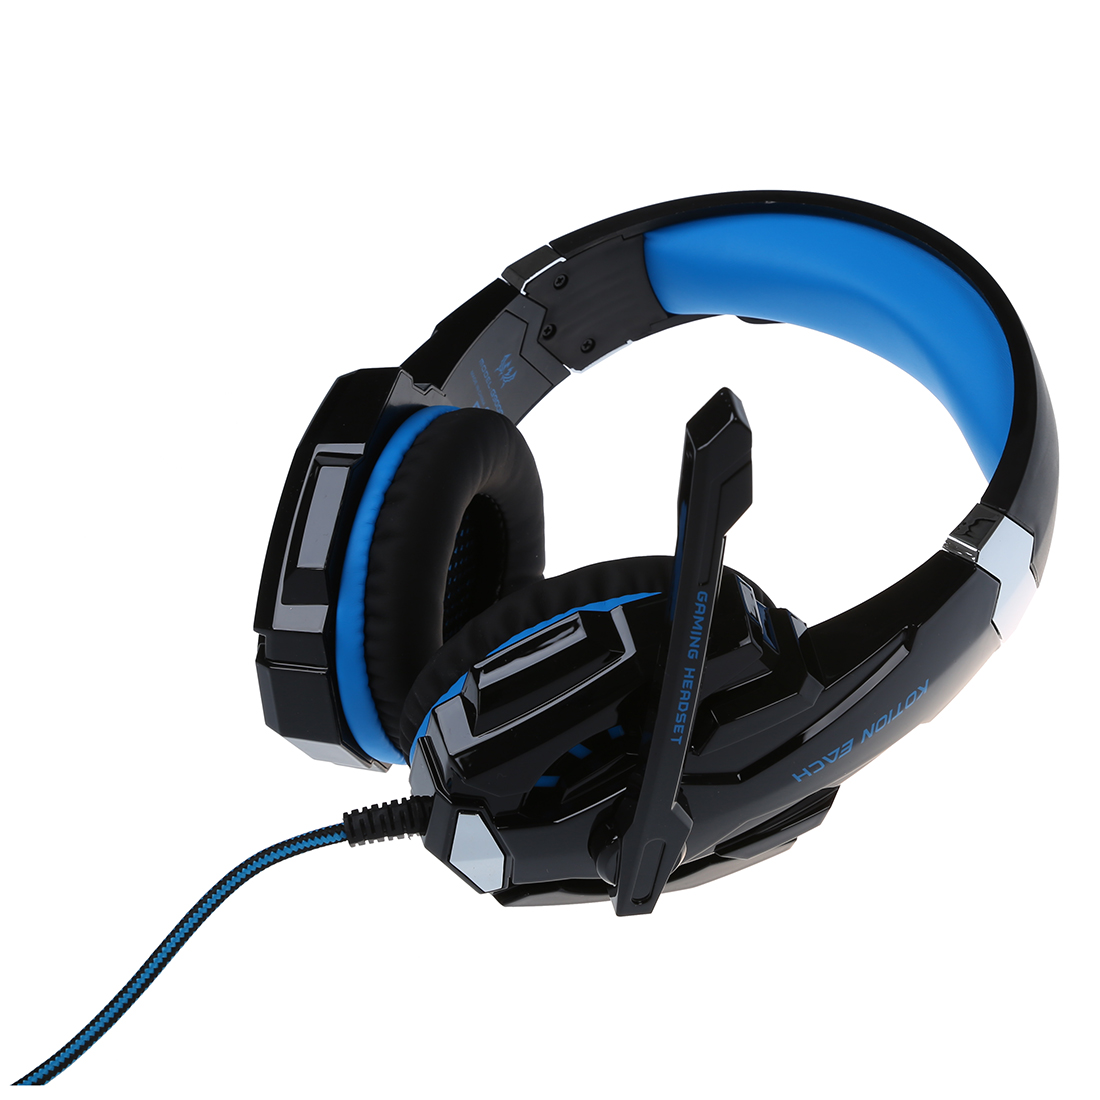 KOTION EACH G9000 Gaming Headset for Play Station 4 Tablet PC iPhone 6 / 6s / 6 Plus / 5s / 5c / 5 Mobilephones, 3.5 mm